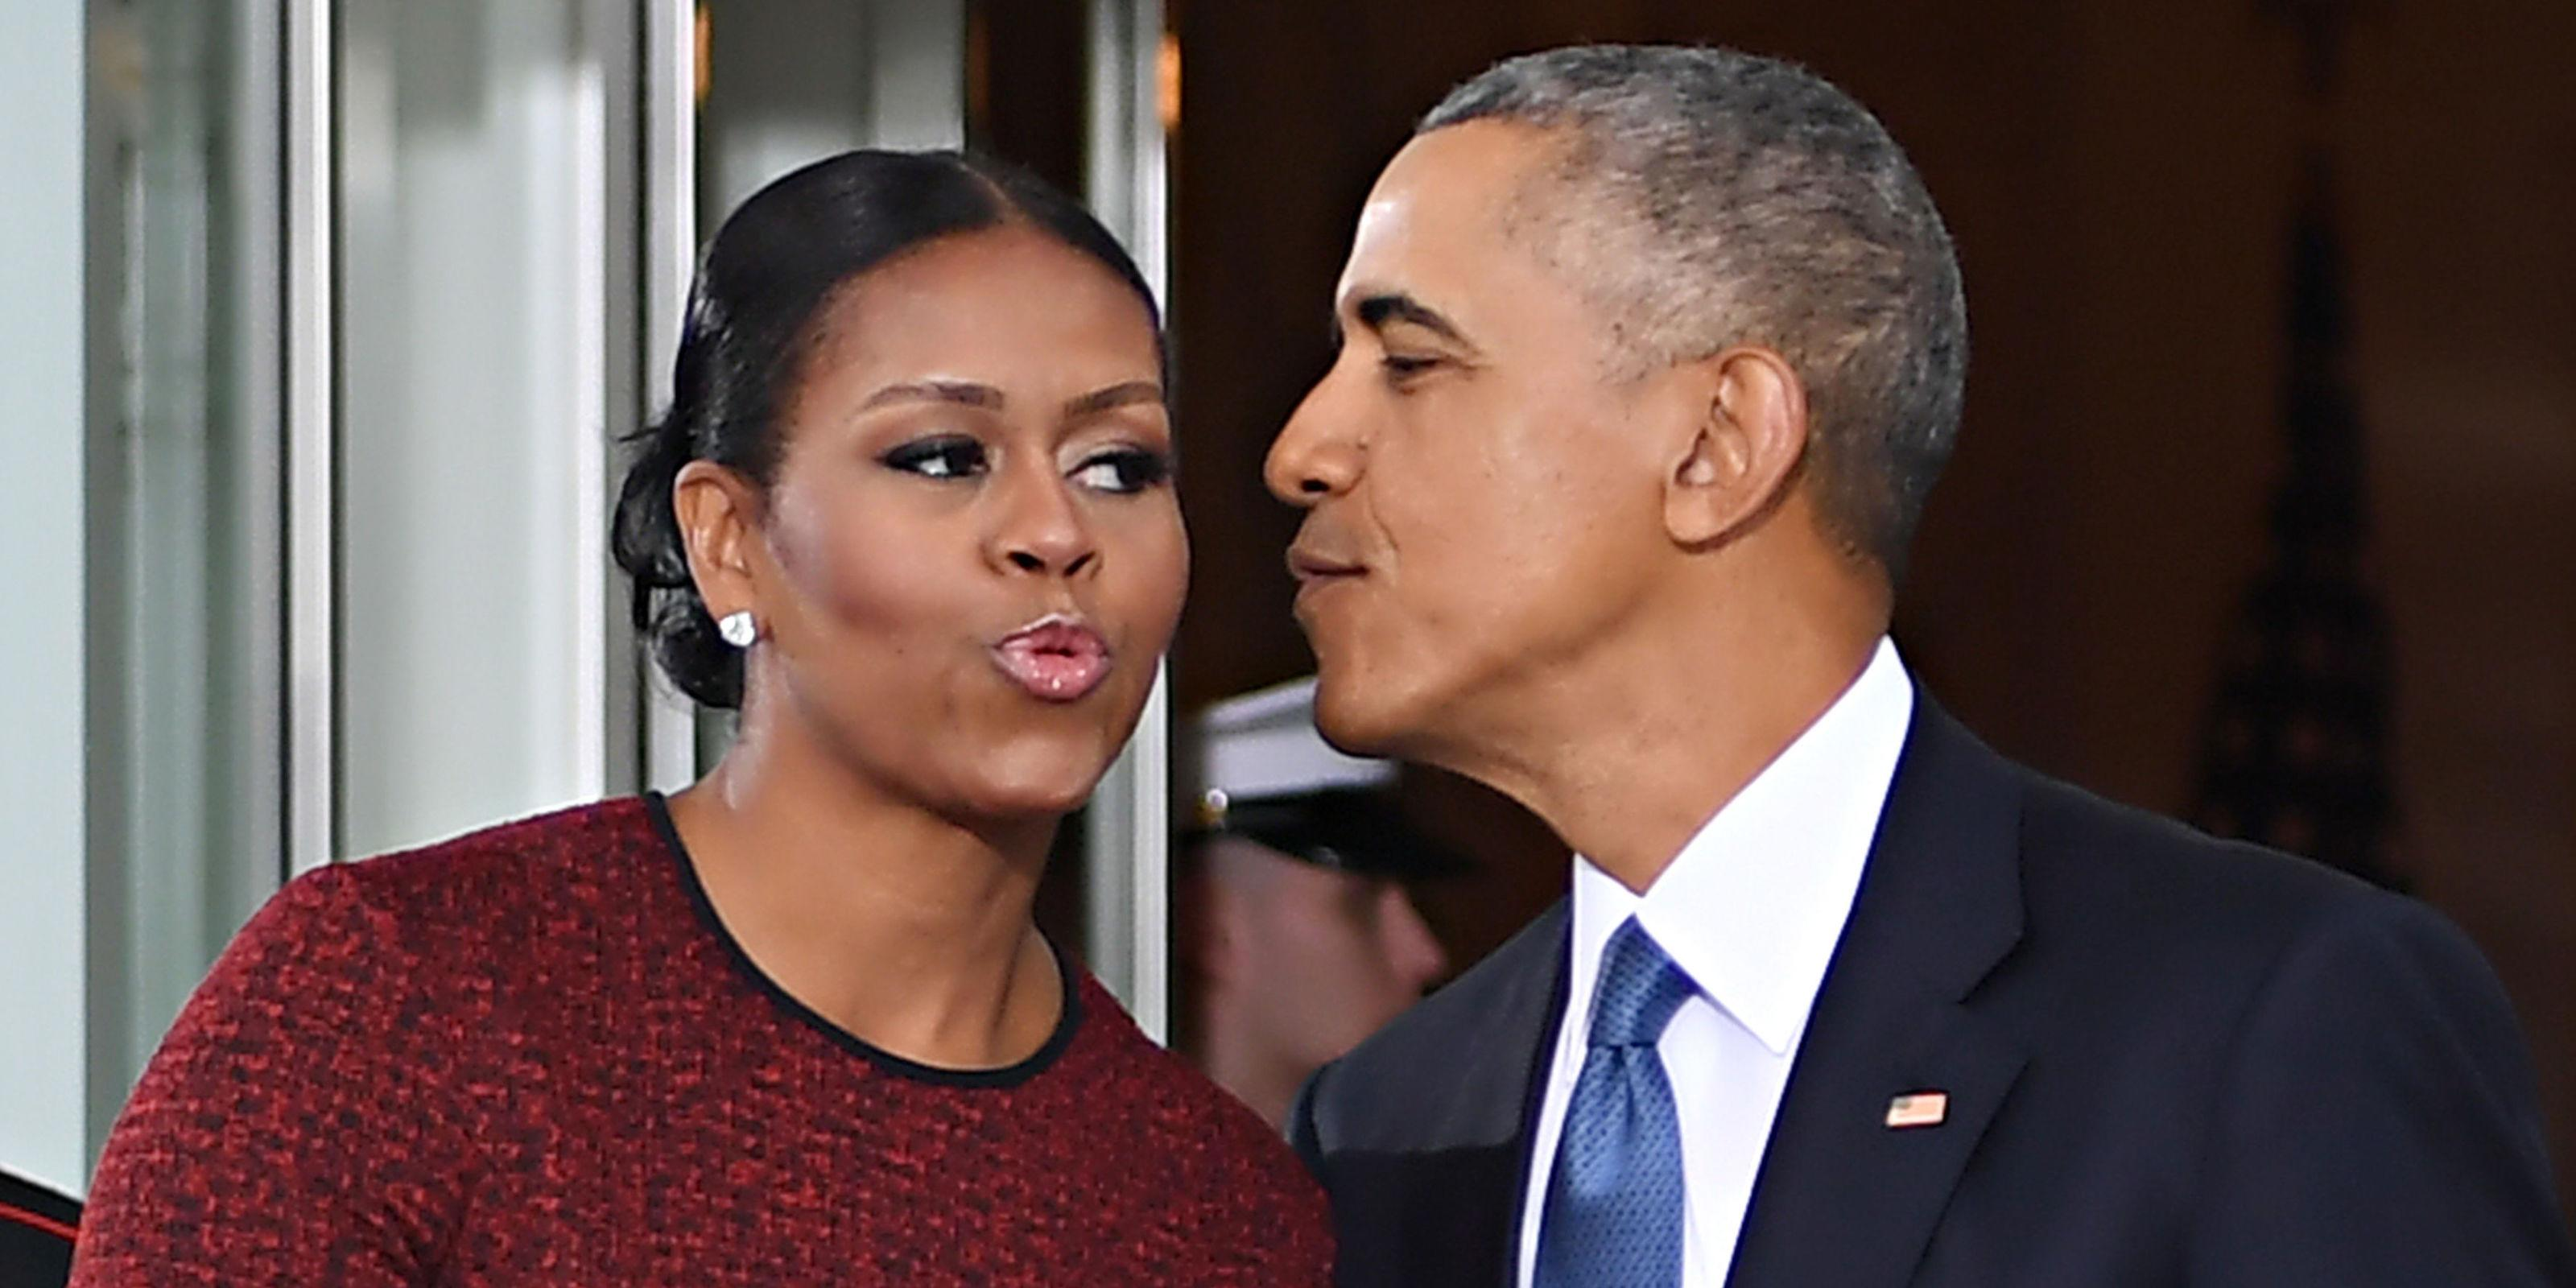 Barack and Michelle Obama Pop In to Say They Haven't Gone Anywhere